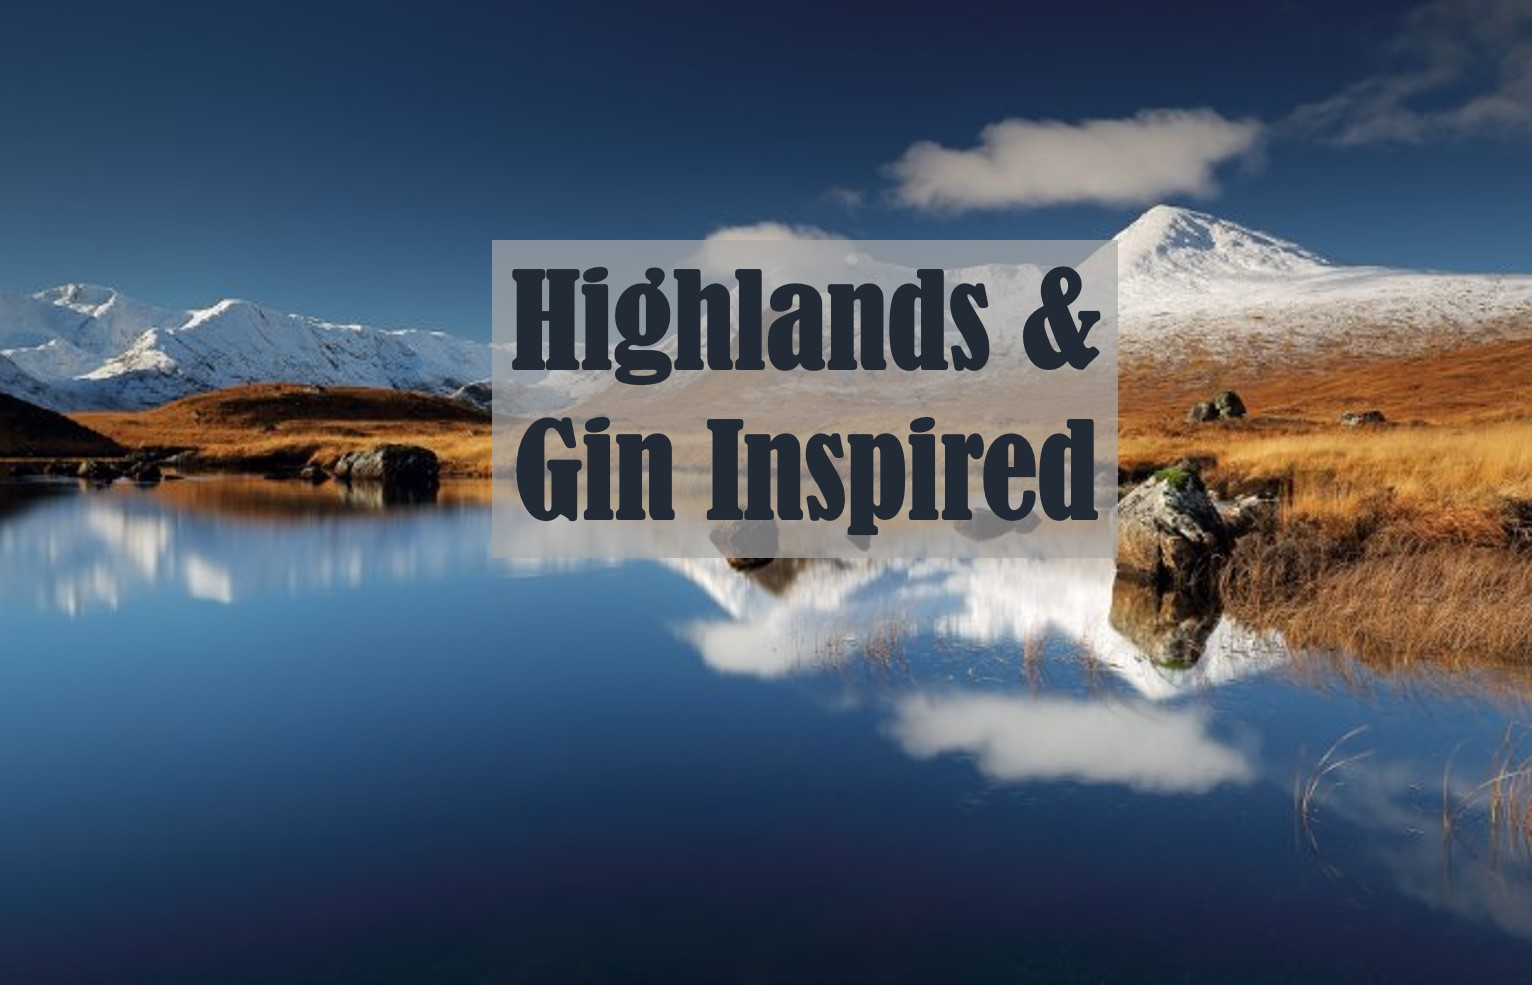 GETTING TRULY OFF SITE TO OUR GIN PARTNER'S REMOTE DISTILLERY IN THE SCOTTISH HIGHLANDS. INSPIRED BY THE PROCESS OF SOURCING BOTANICALS, EXPERT TASTINGS AND WALKS IN THE TRUE FRESH AIR. INSPIRED BY THE GREAT OUTDOORS.